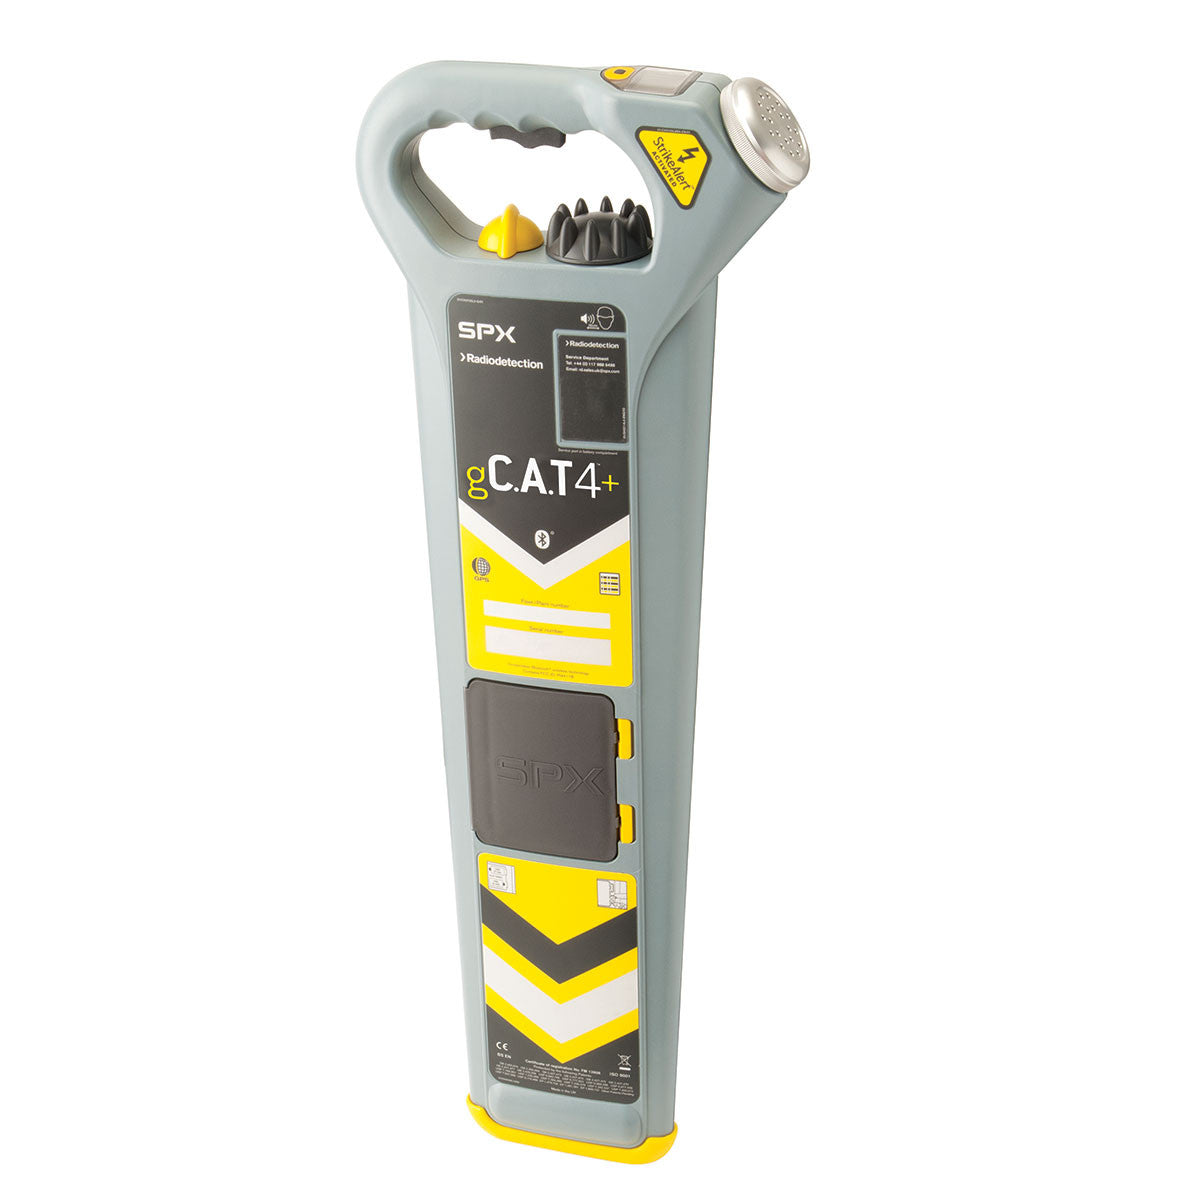 Radiodetection Gc A T4 Cable Locator One Point Survey